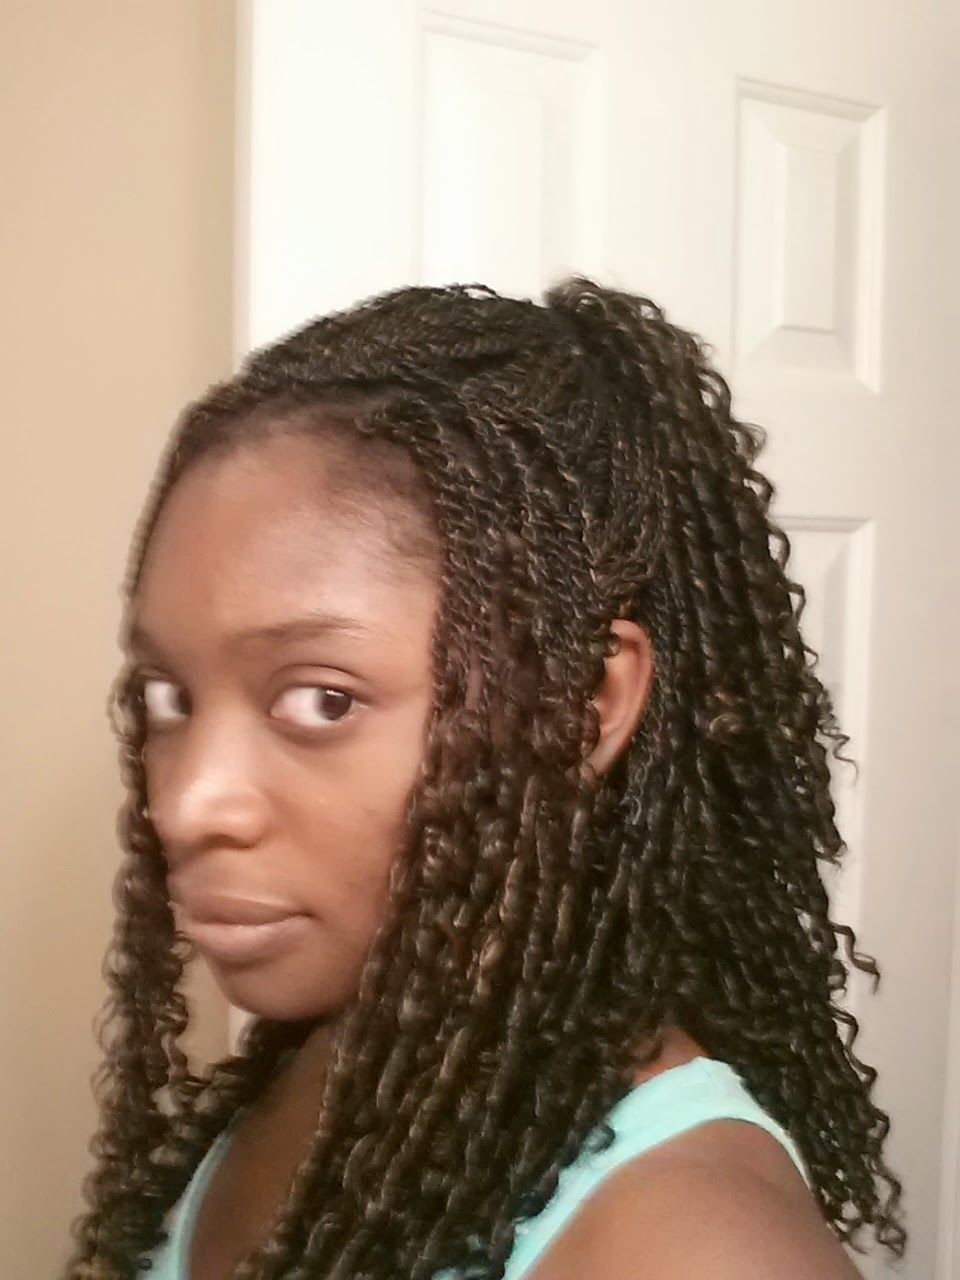 Hairstyle 2 Crochet Braids Pre Braided Strands D ...